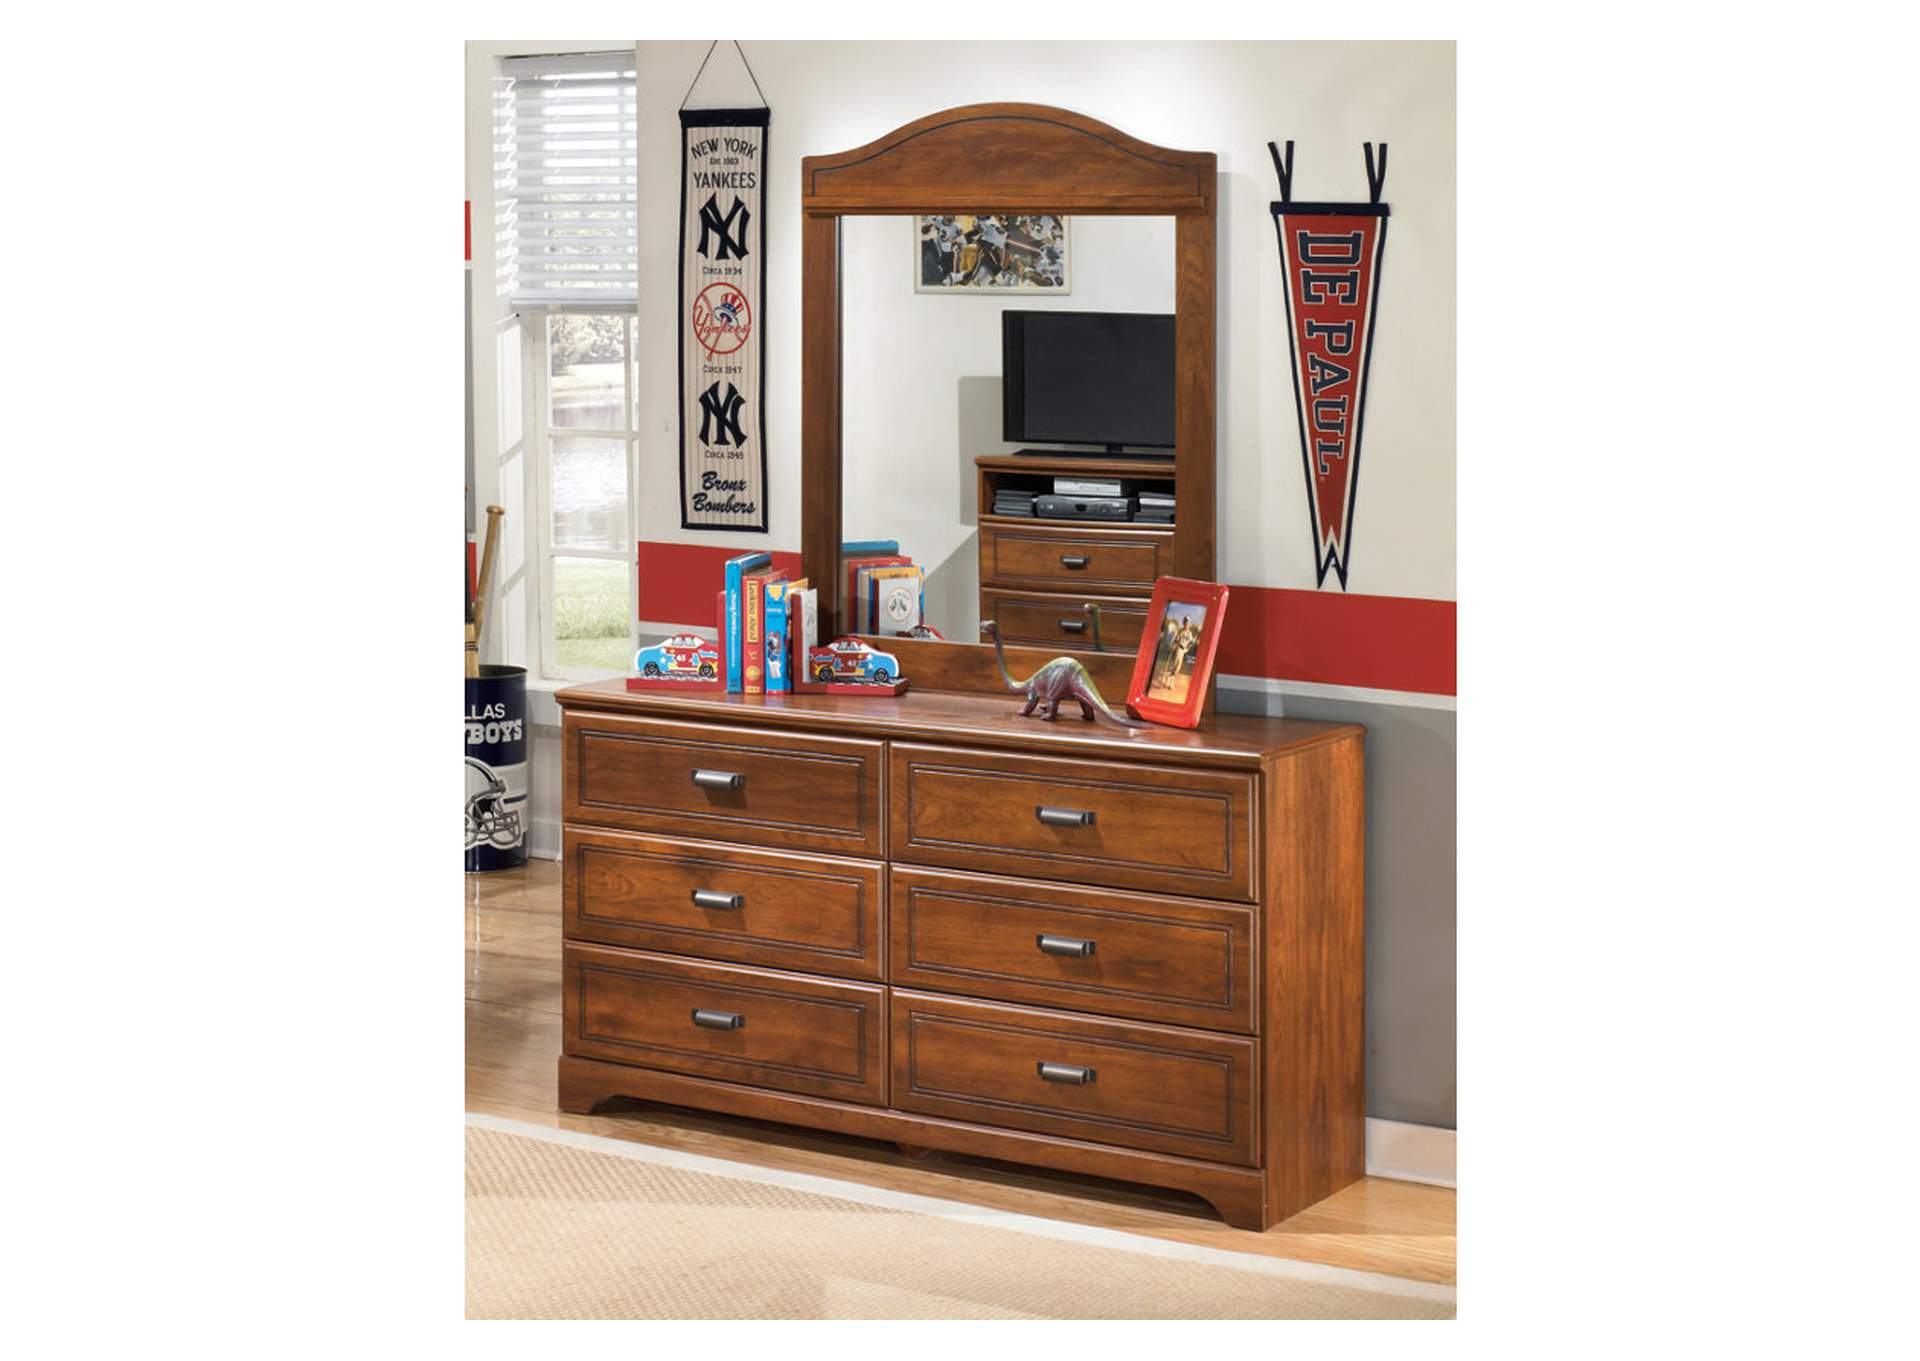 Barchan Dresser,ABF Signature Design by Ashley